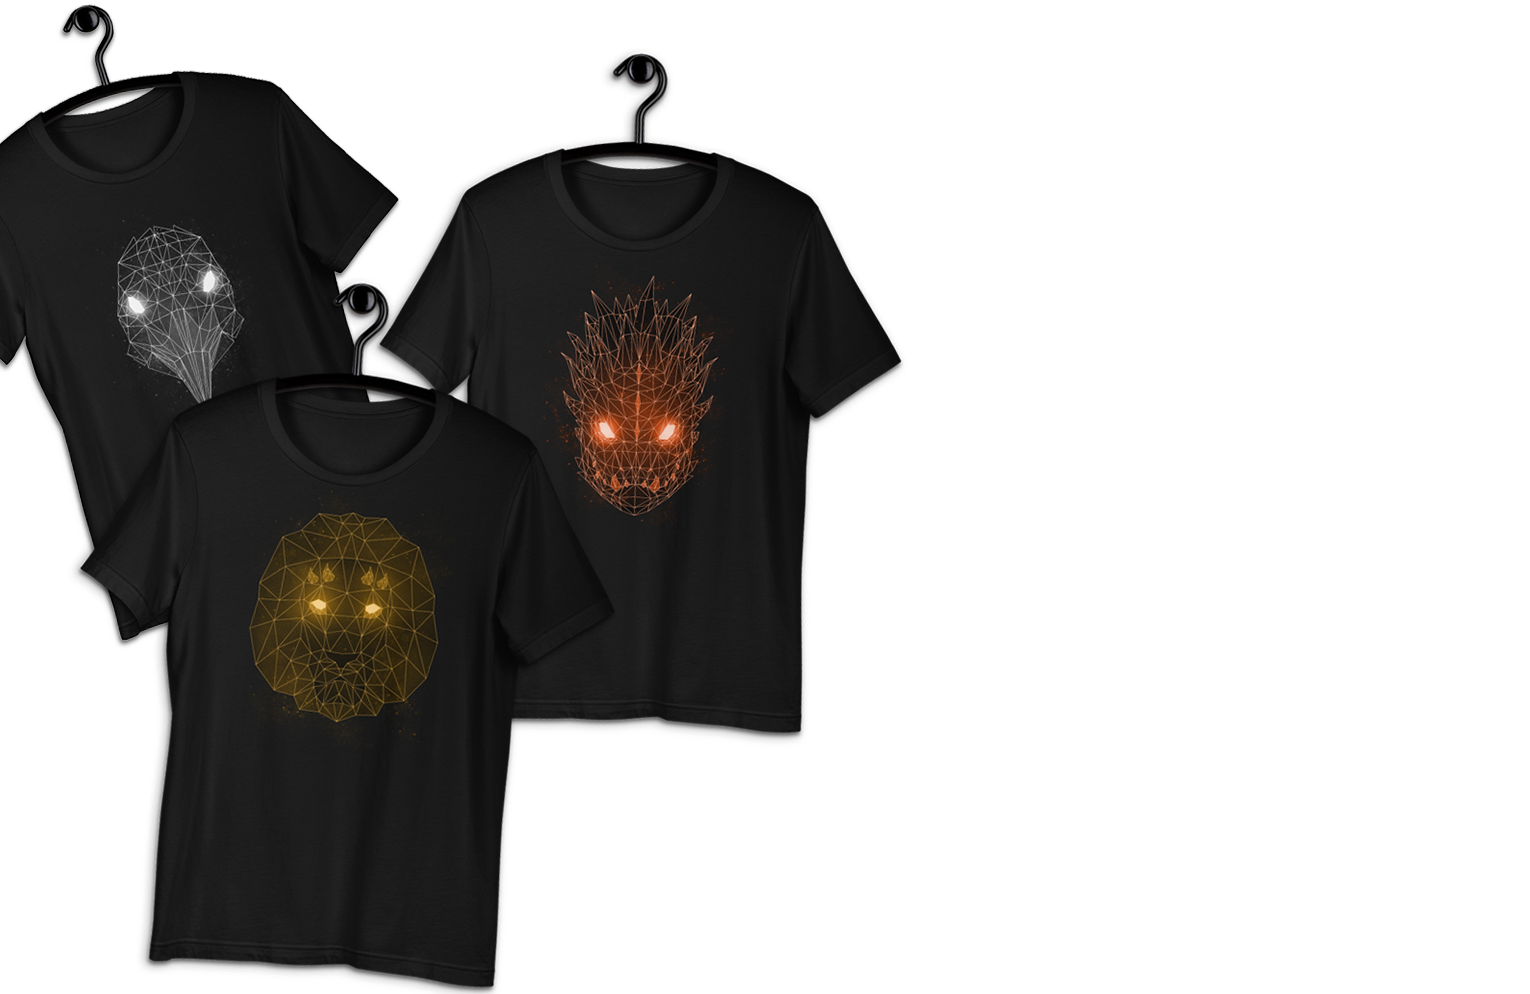 Want to sport your Patron God on a shirt? We've got you covered!